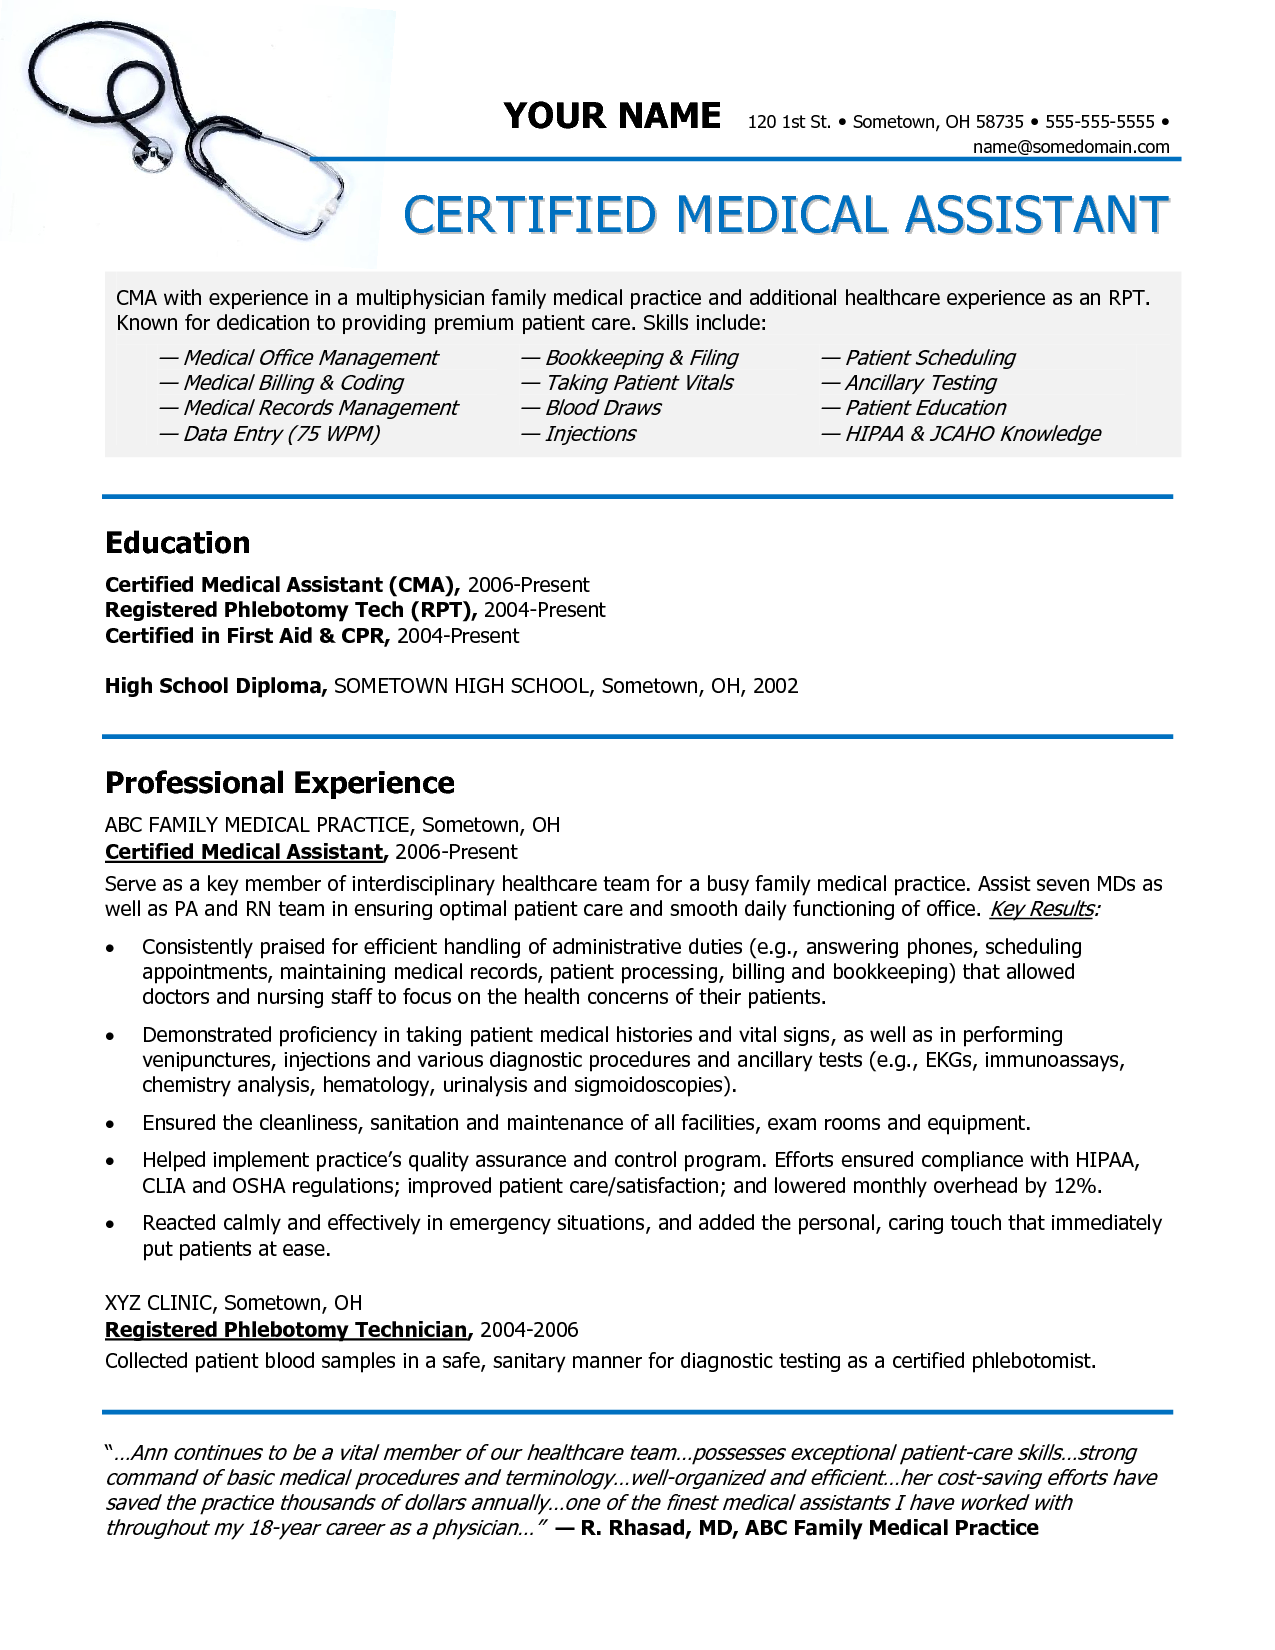 medical assistant resume entry level examples 18 medical assistant - Entry Level Medical Assistant Resume